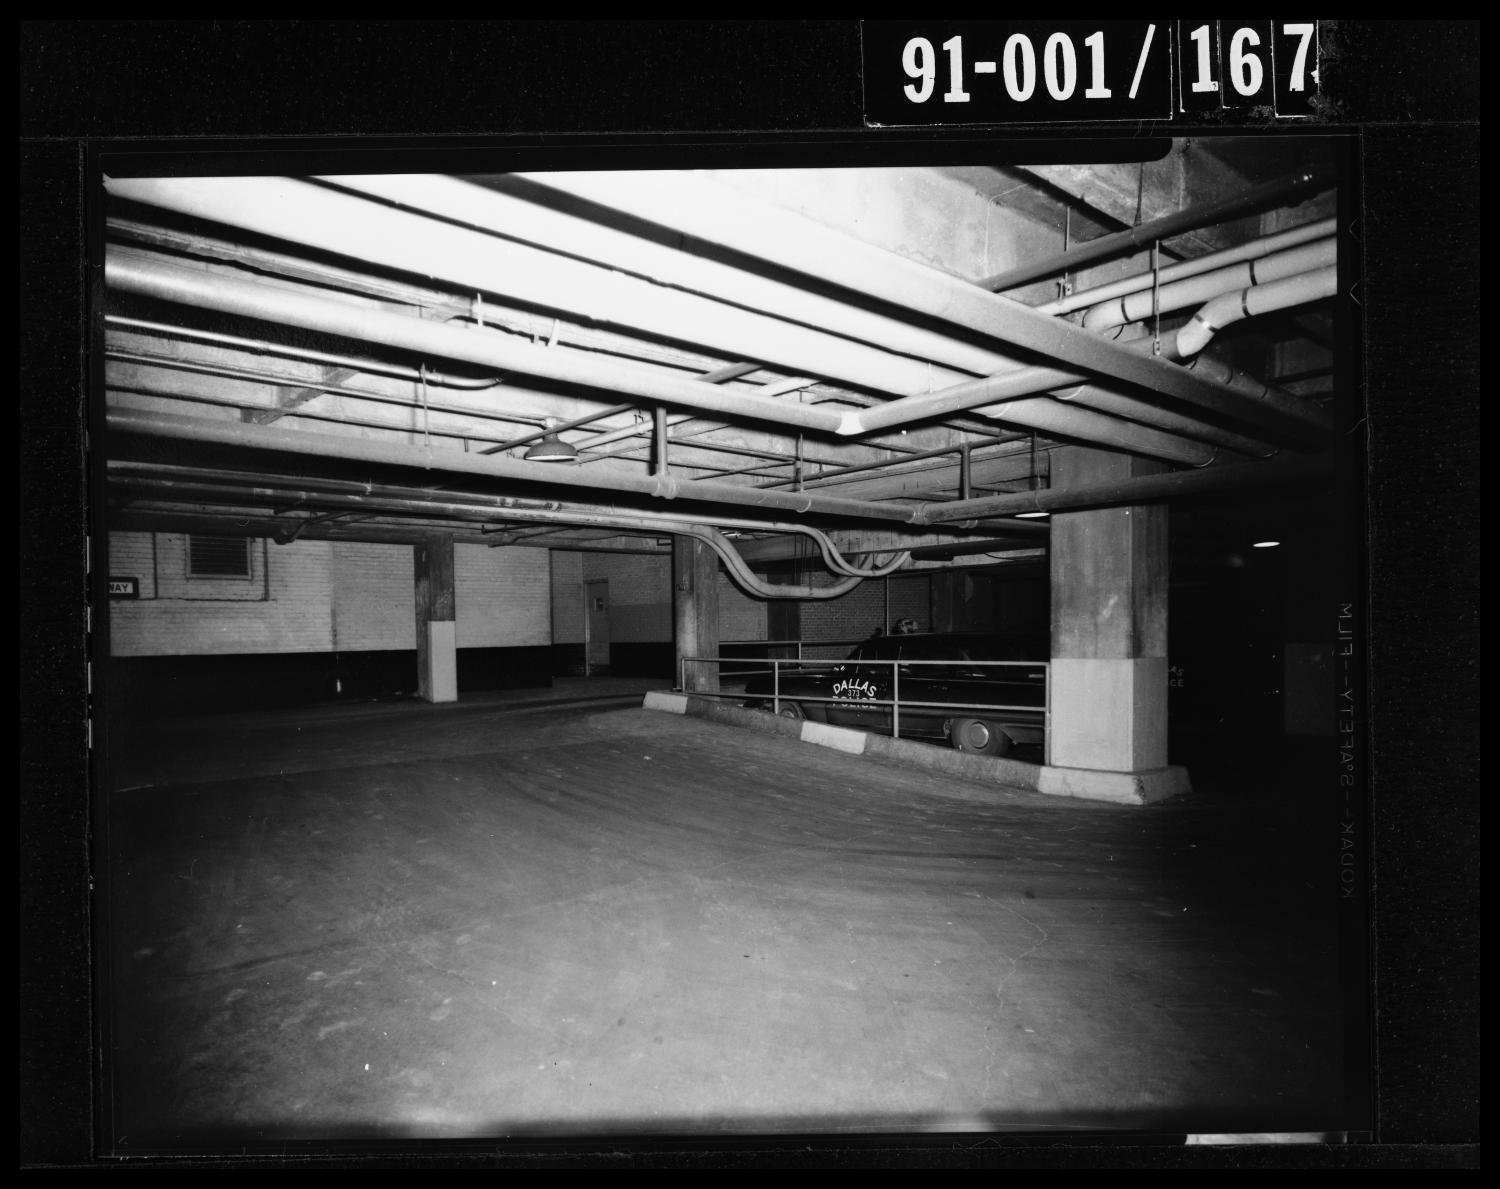 City Hall Basement [Negative]                                                                                                      [Sequence #]: 1 of 1